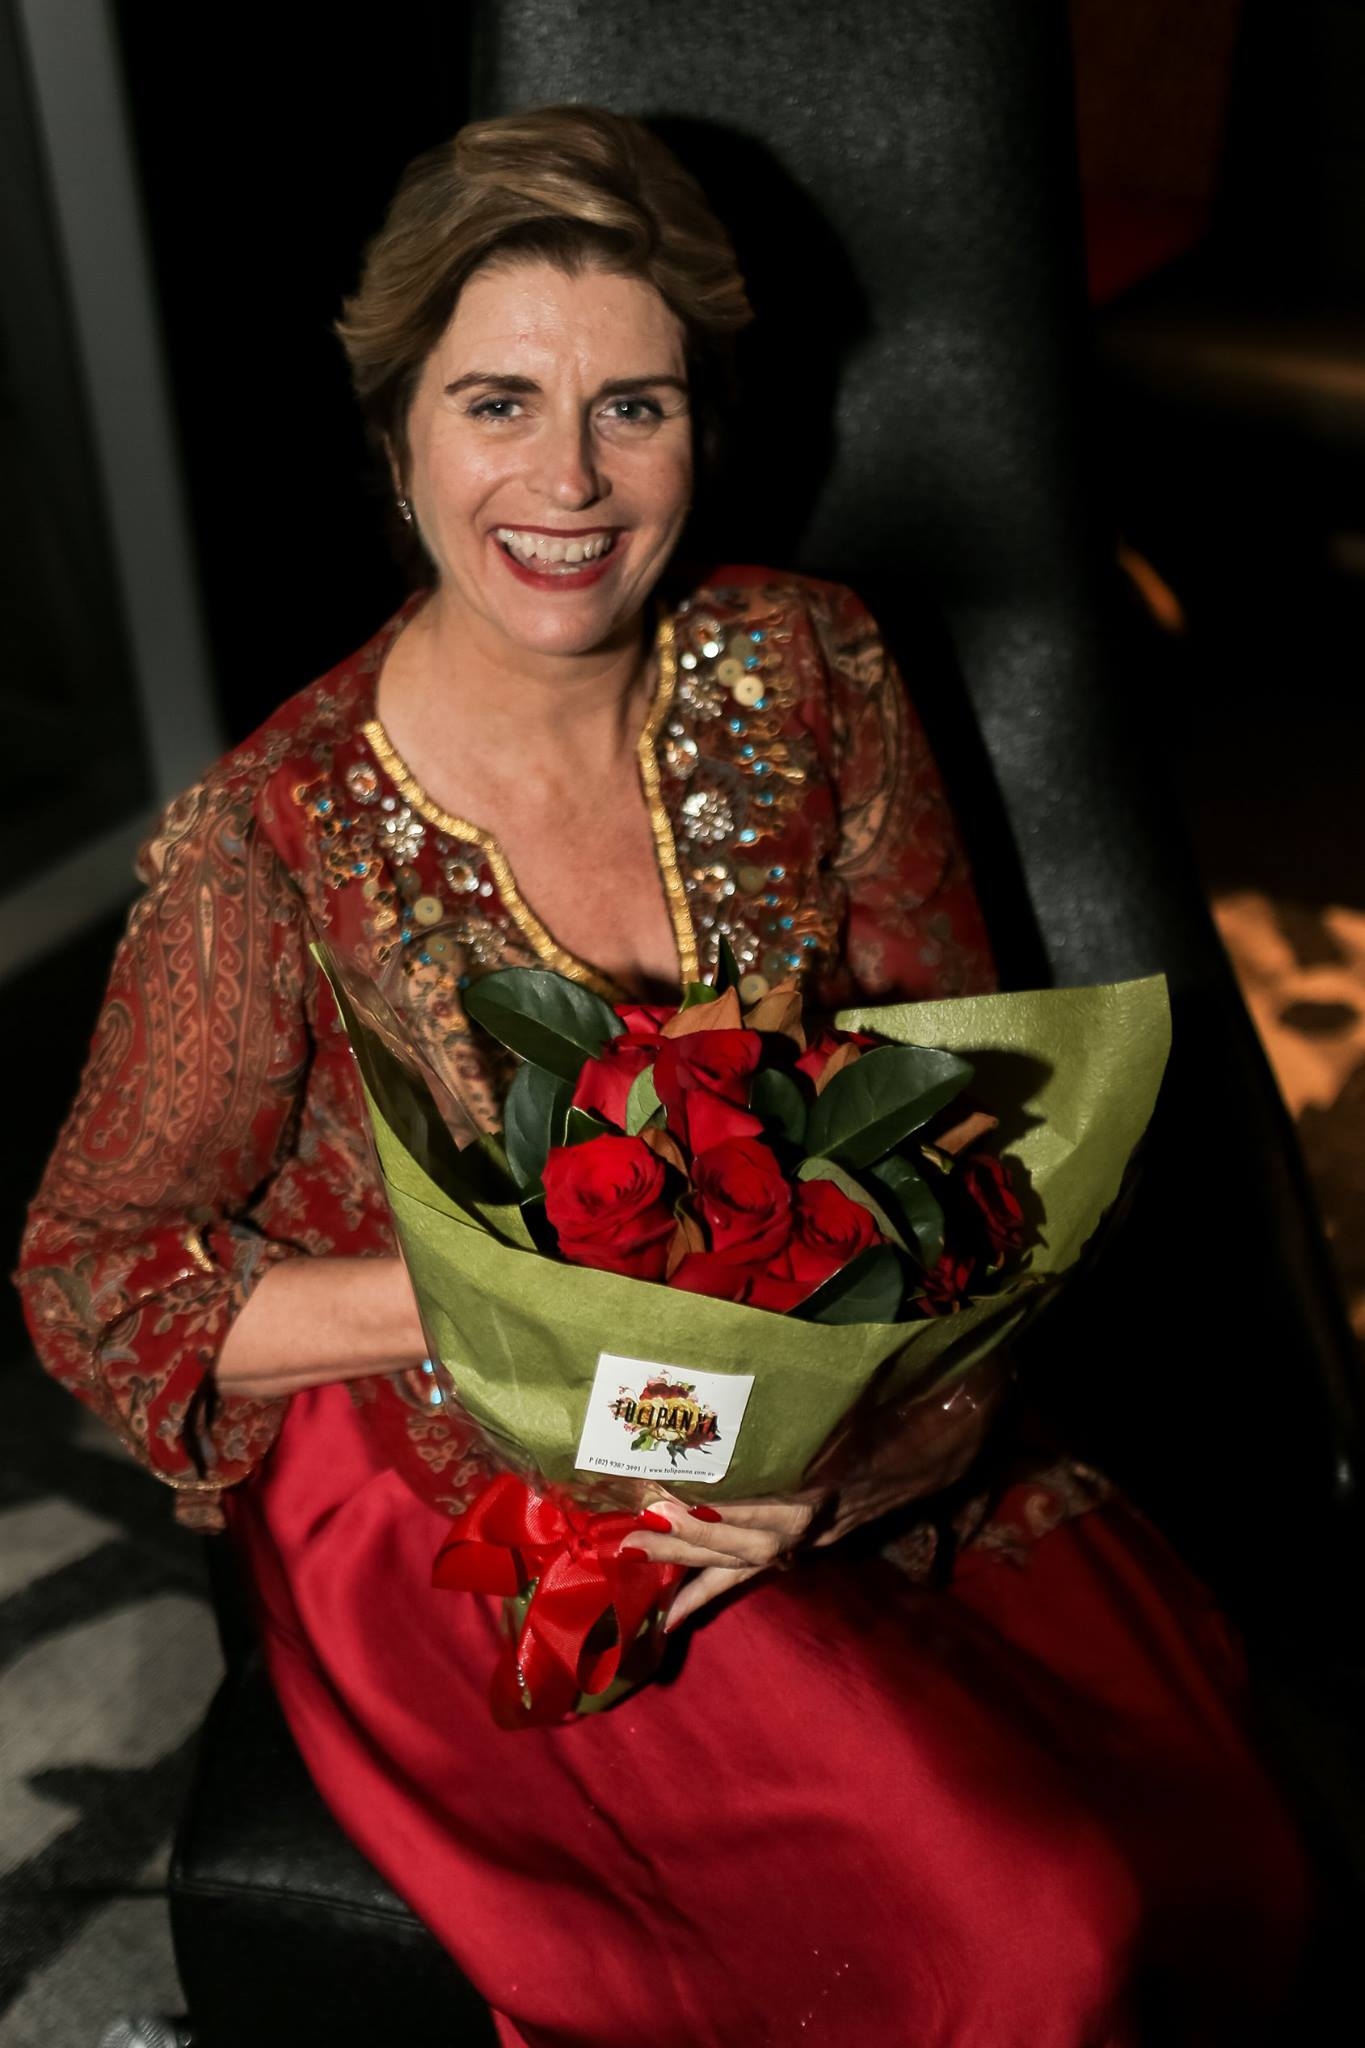 Nothing like red roses at a Red Party! Thank you Maree Lipschitz for your beautiful and soulful vibe to set the scene for the evening. A very impressive journey from scientist to The Midlife Midwife! Thank you for the contribution you are making to educating women and daughters about our bodies and feminine power.